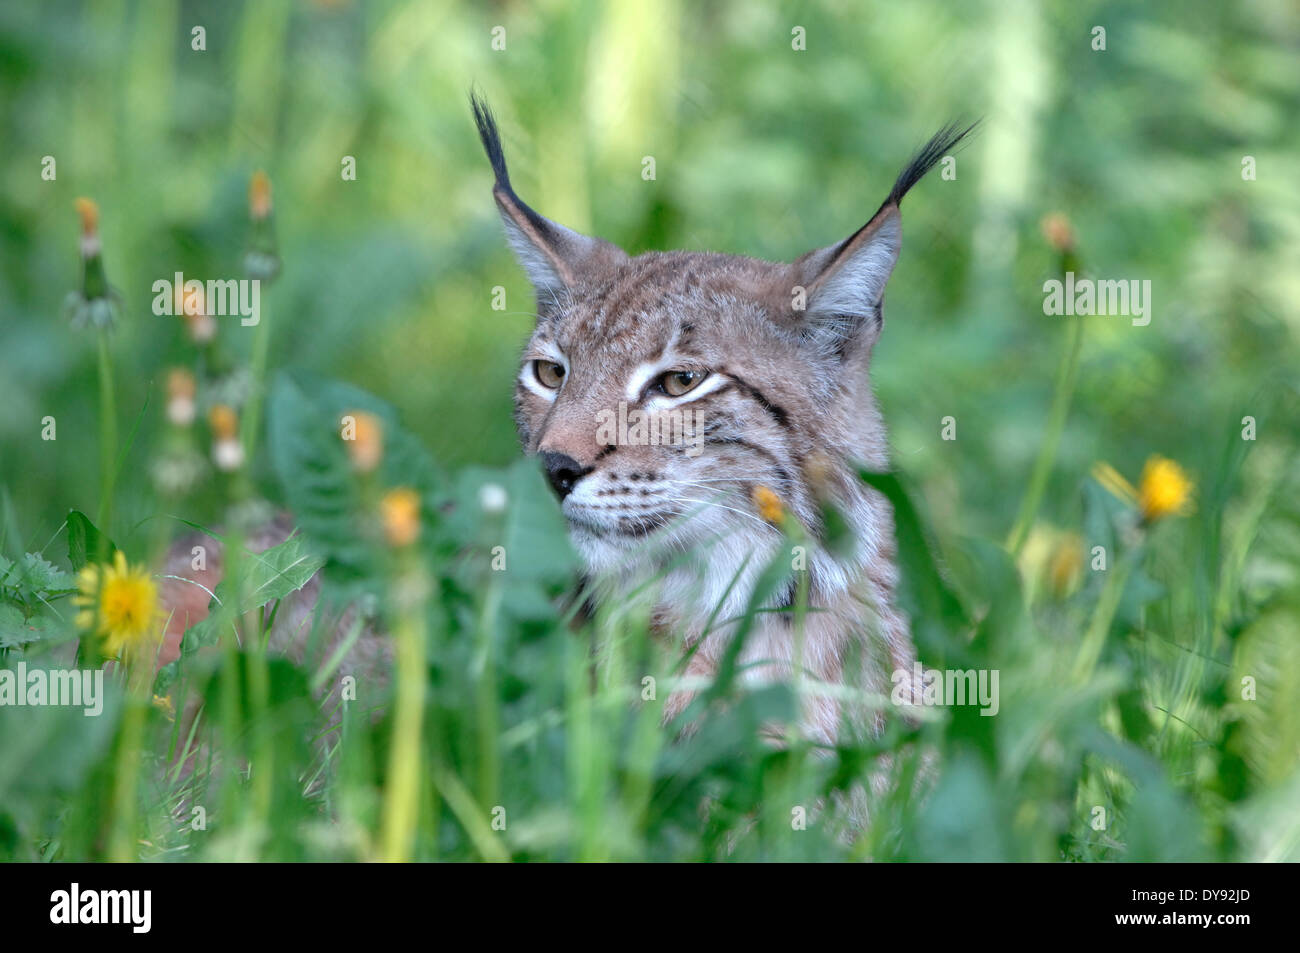 Lynx, cat, big cat, predator, cats, wildcat, big cats, lynxes, fur animals, ambusher, grass, animal, animals, Germany, - Stock Image